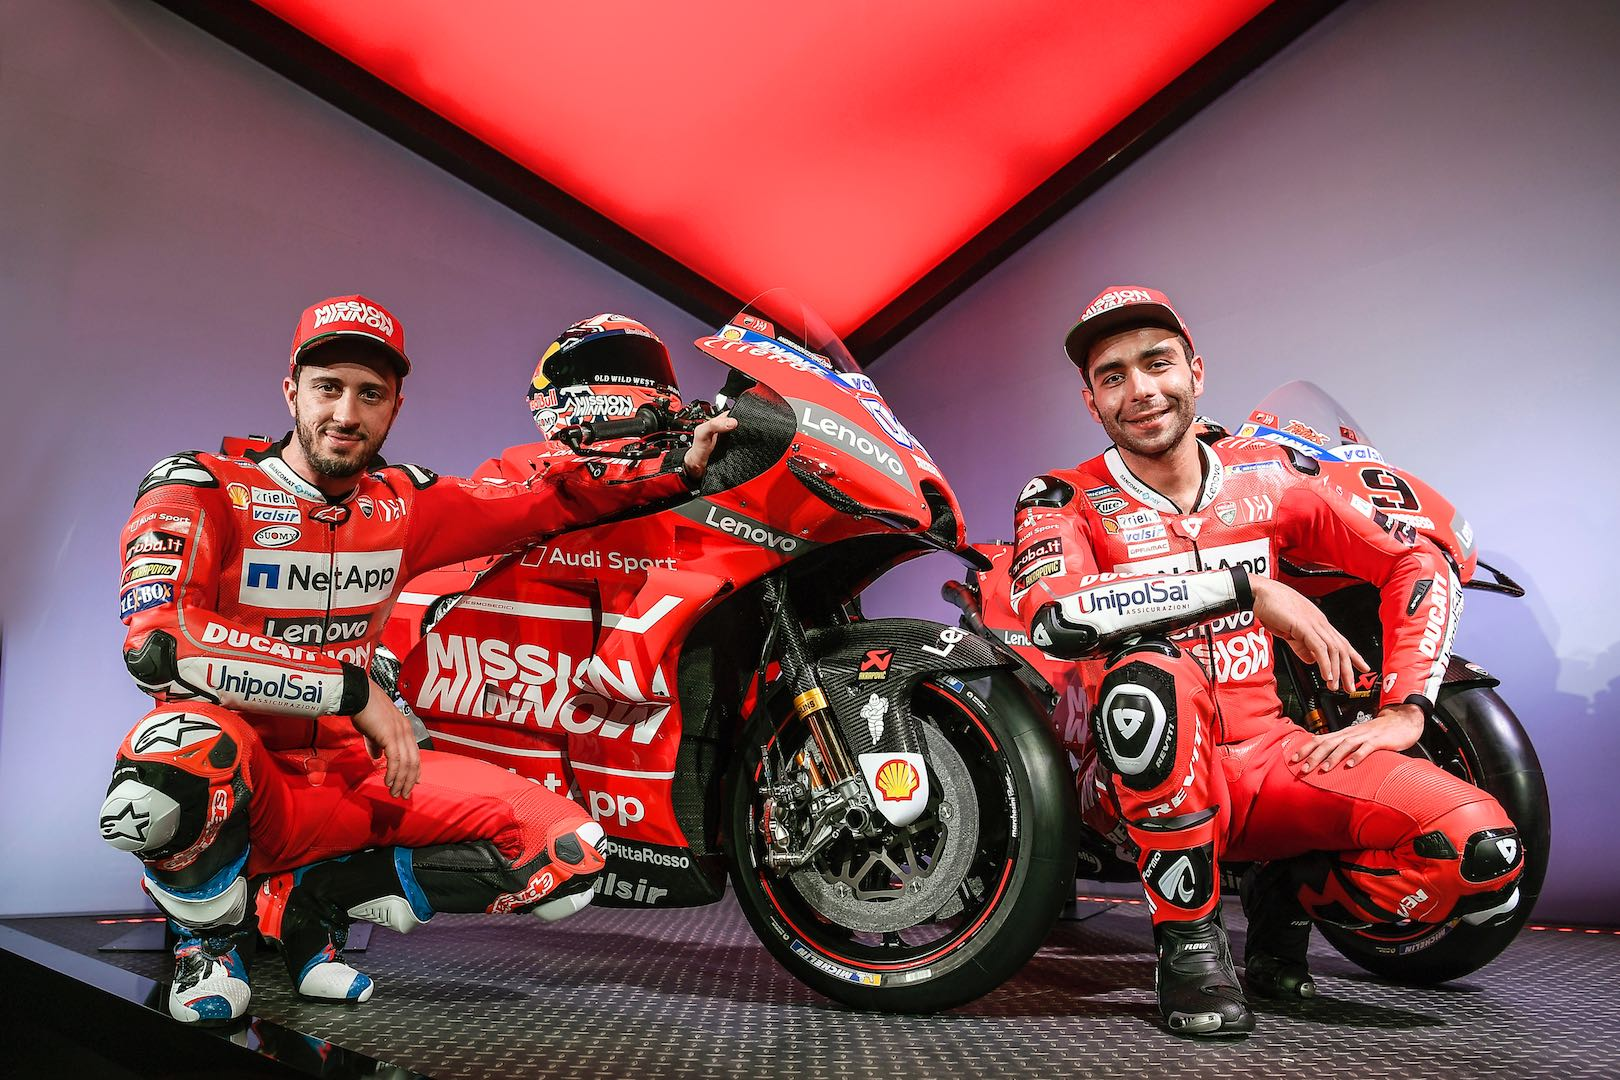 MotoGP – Sponsorship problems for the Mission Winnow Ducati team